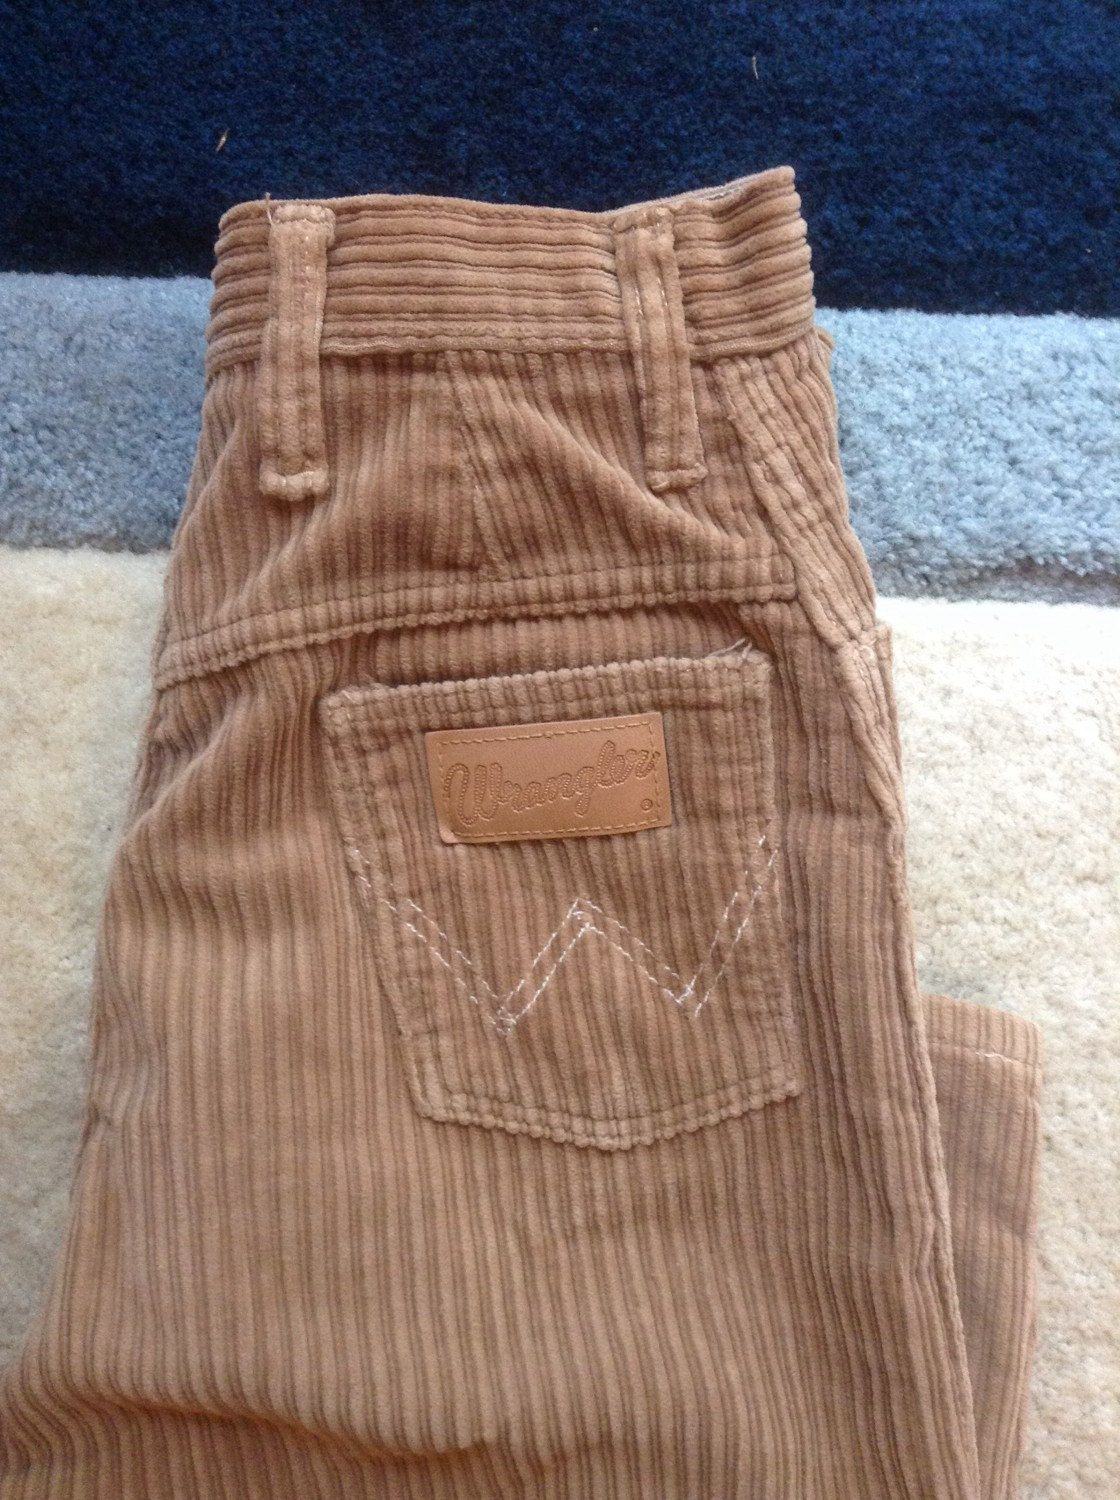 33119d94 Wrangler High Waist Light Brown Corduroy Pants / Misses Wrangler Corduroys  Size 13/14 / Womens Wrangler Straight Leg High Waisted Cords by  Traciesplace on ...